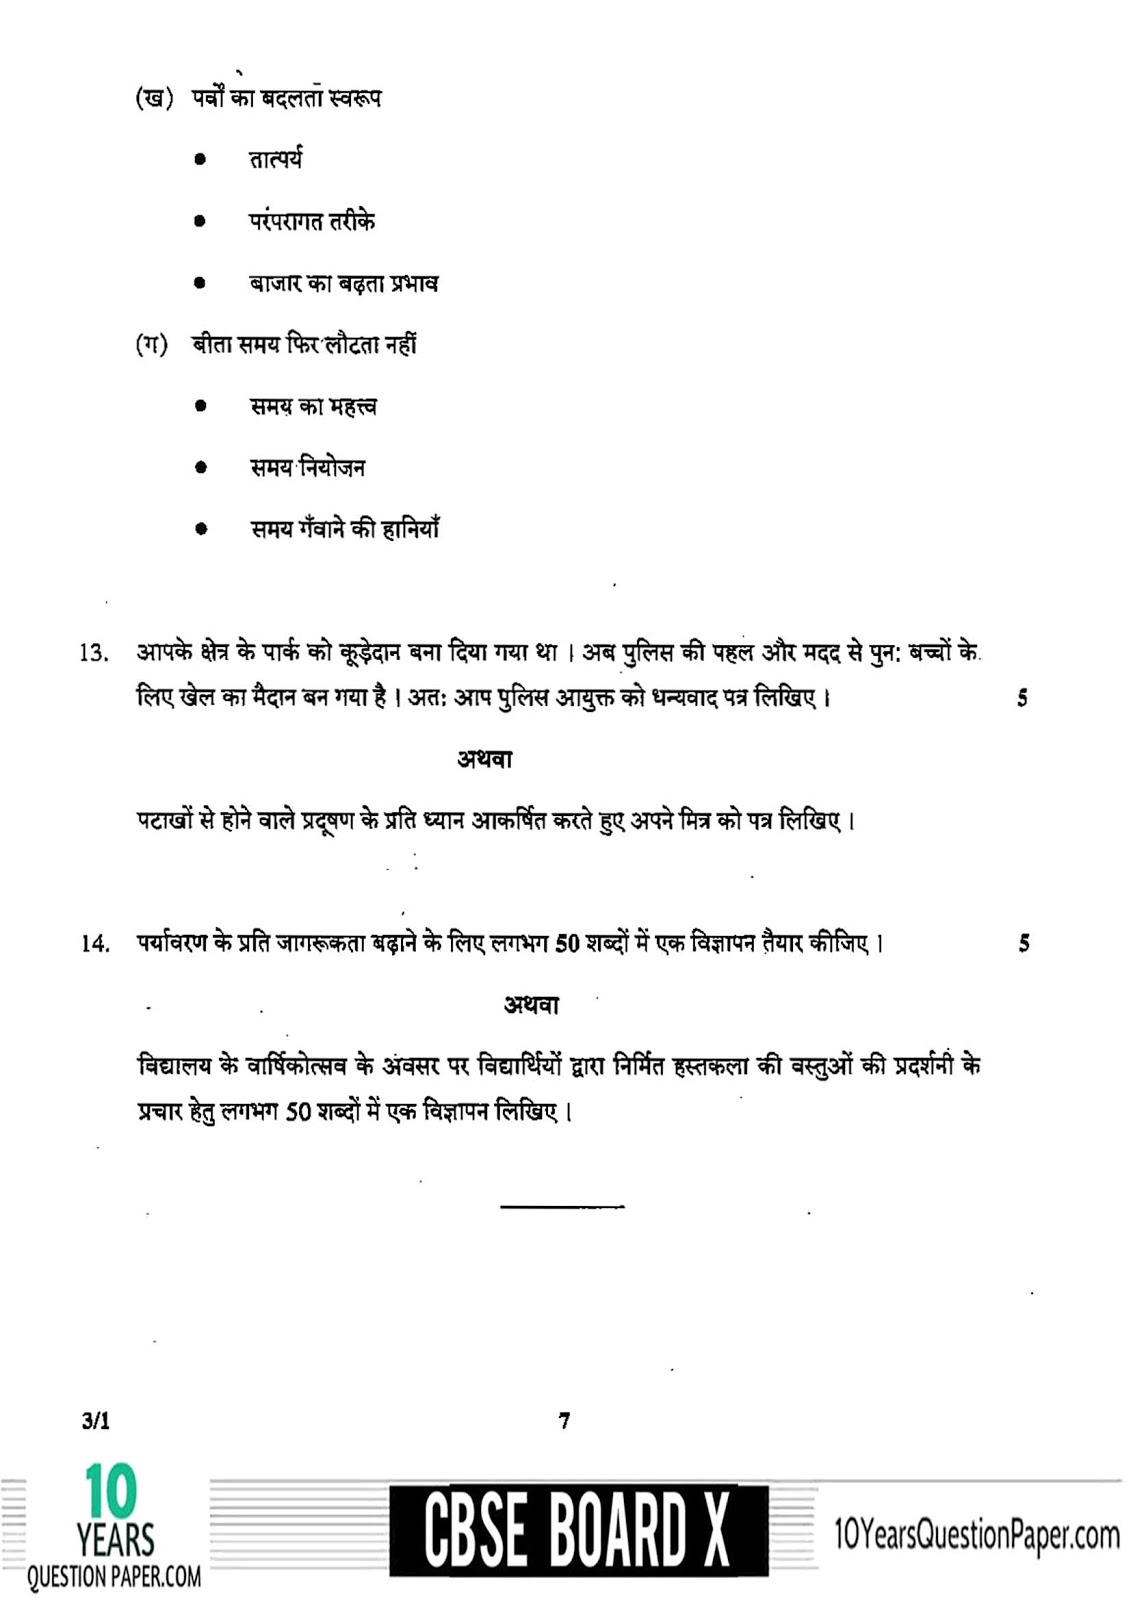 CBSE Board 2018 Hindi Course A Question paper Class 10 Page-07